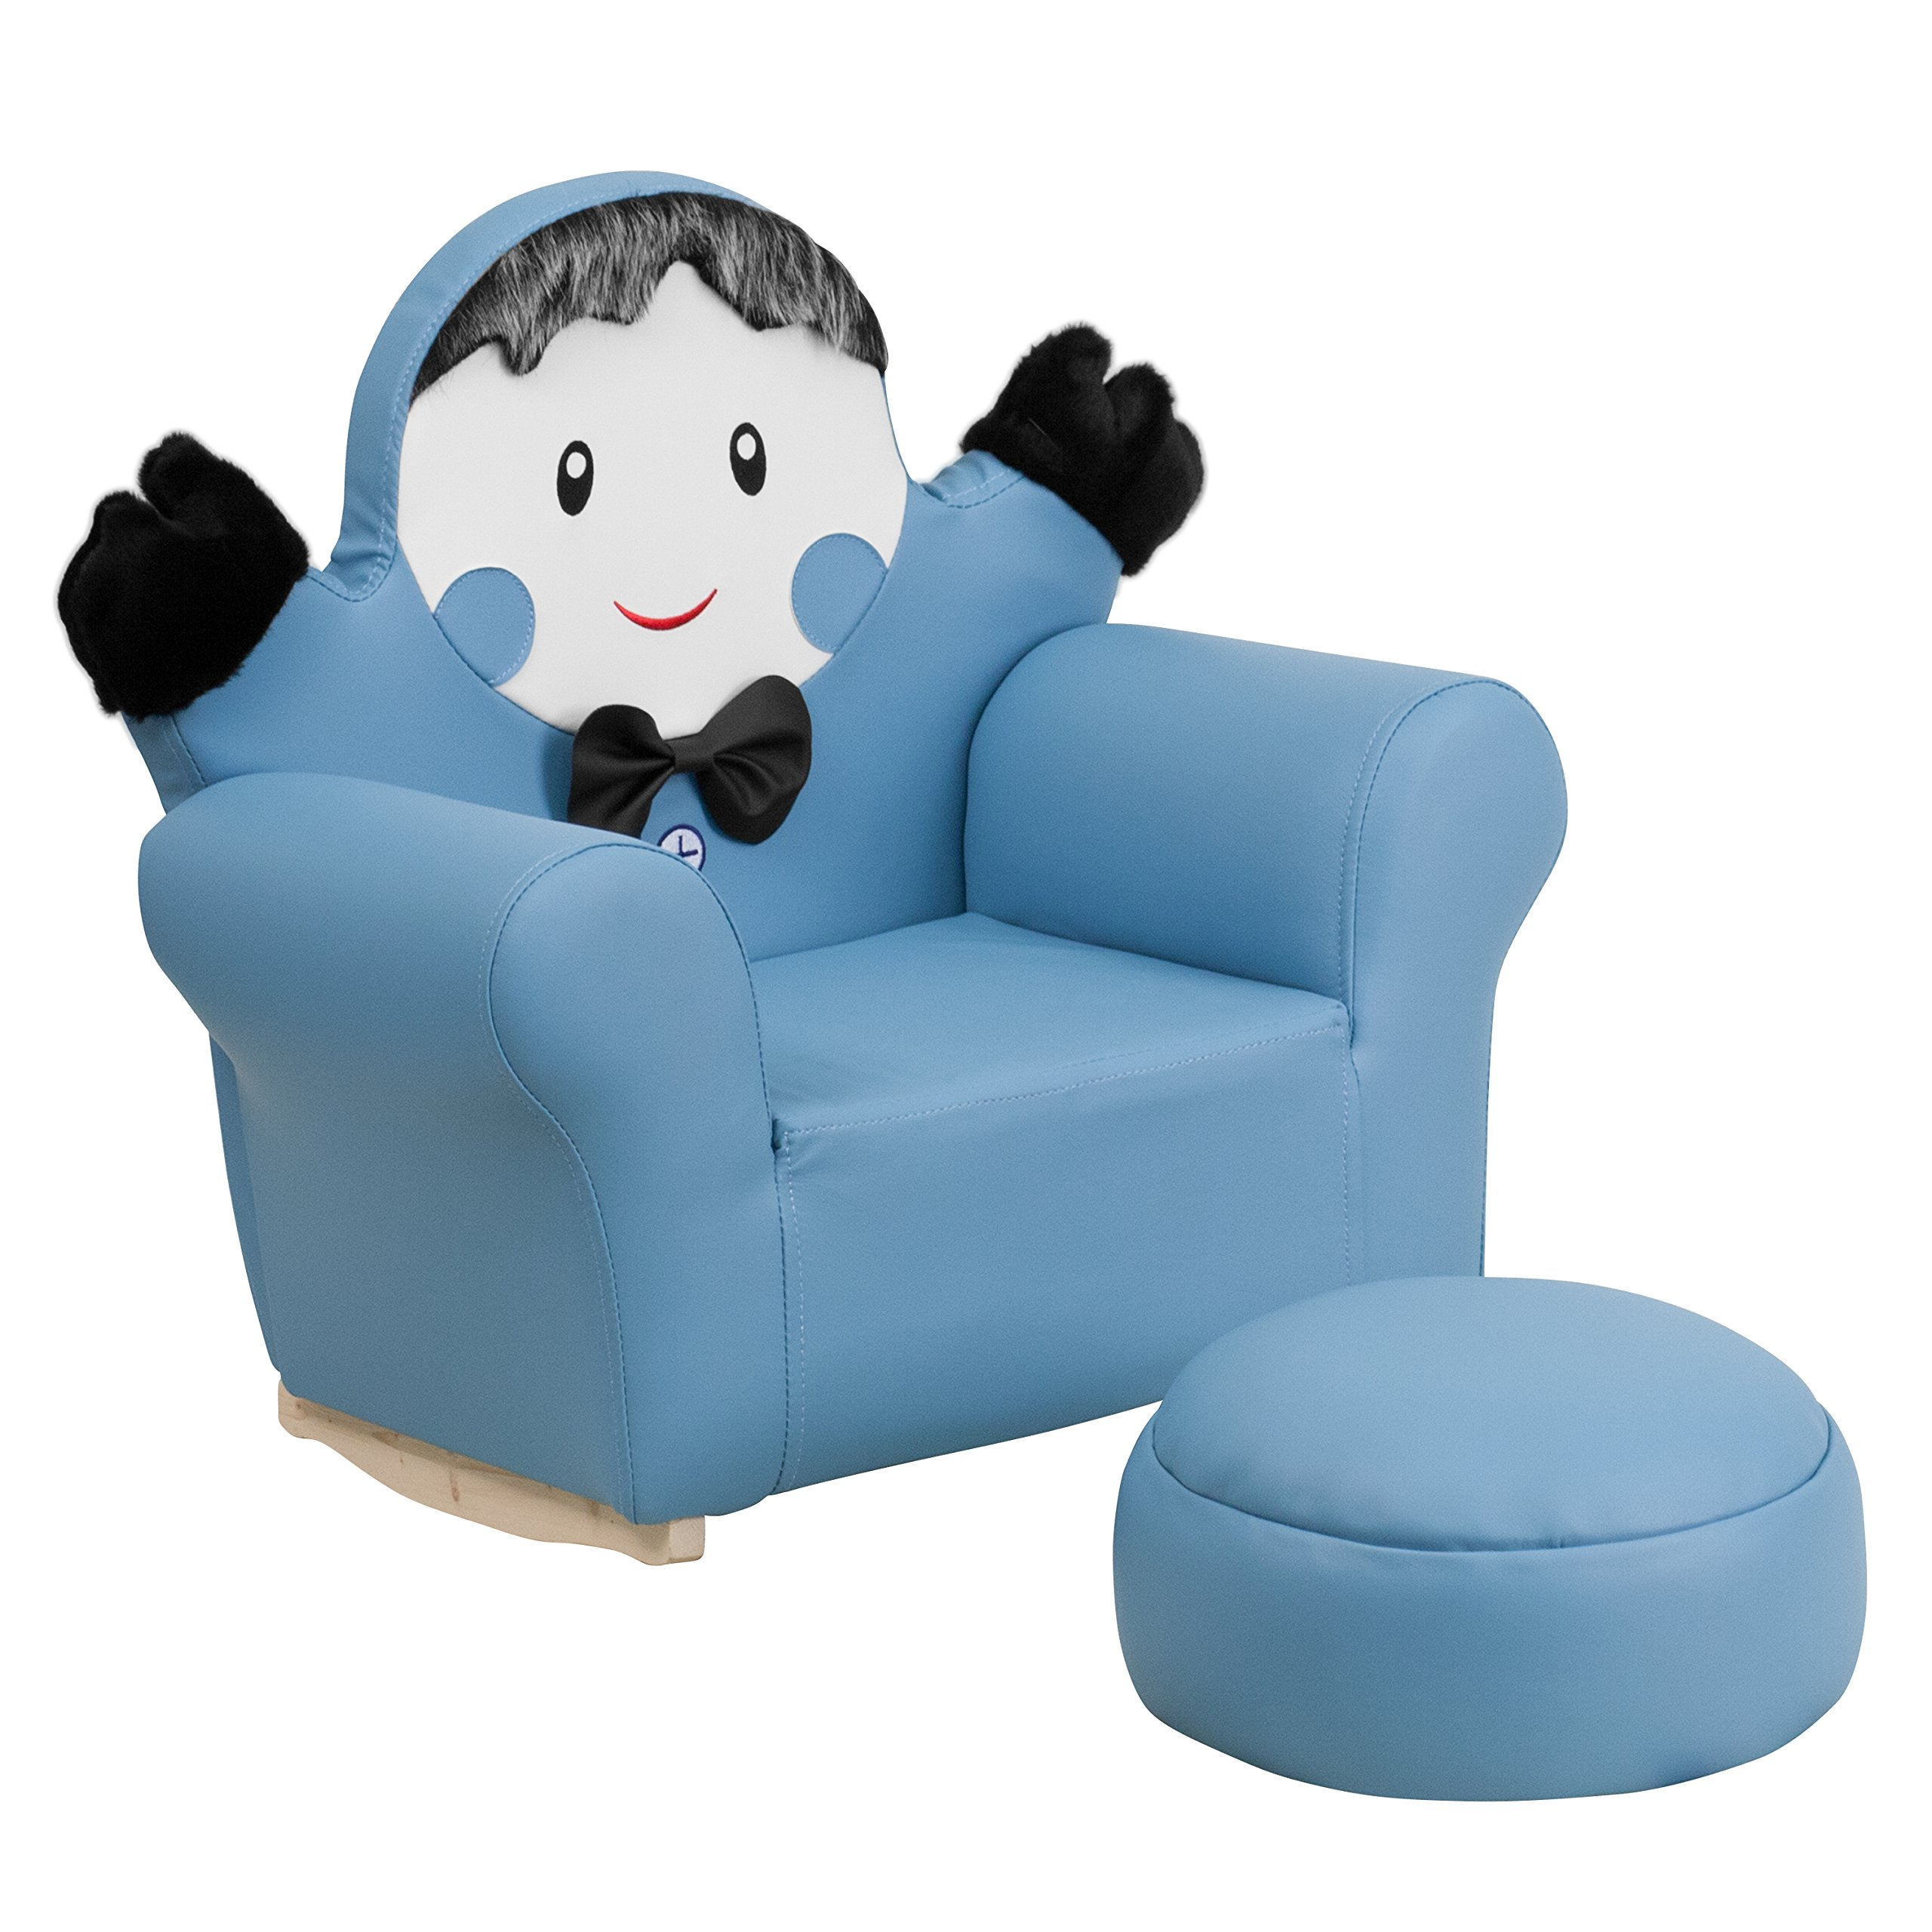 MFO Kids Blue Little Boy Rocker Chair and Footrest